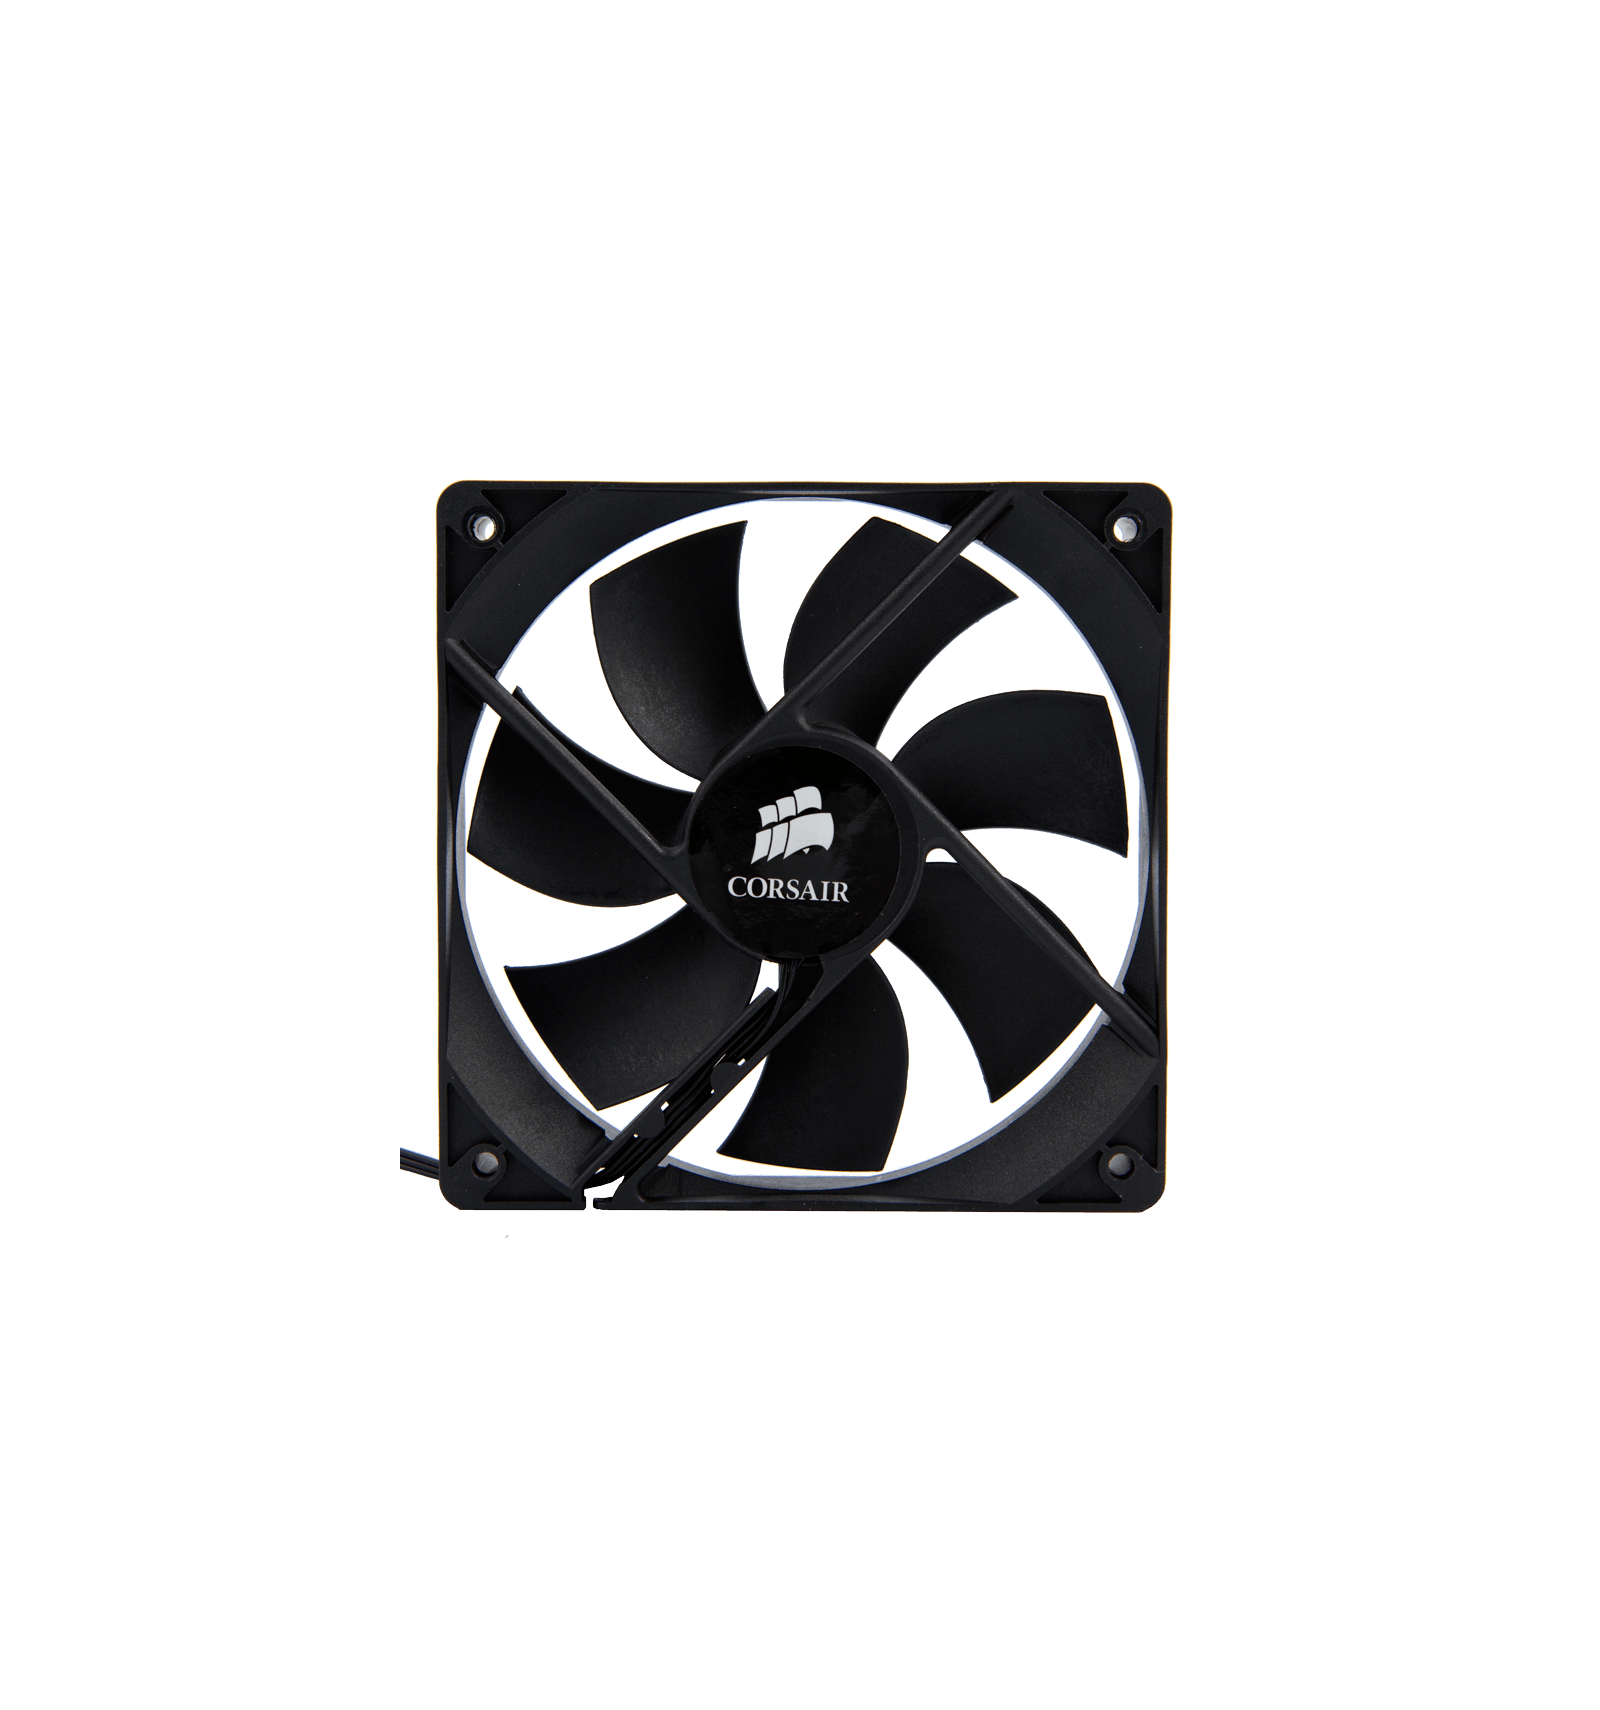 Magasin Ventilateur Ventilateur 12 Cm Noir Cw 8960001 Corsair Magasin Informatique Cap